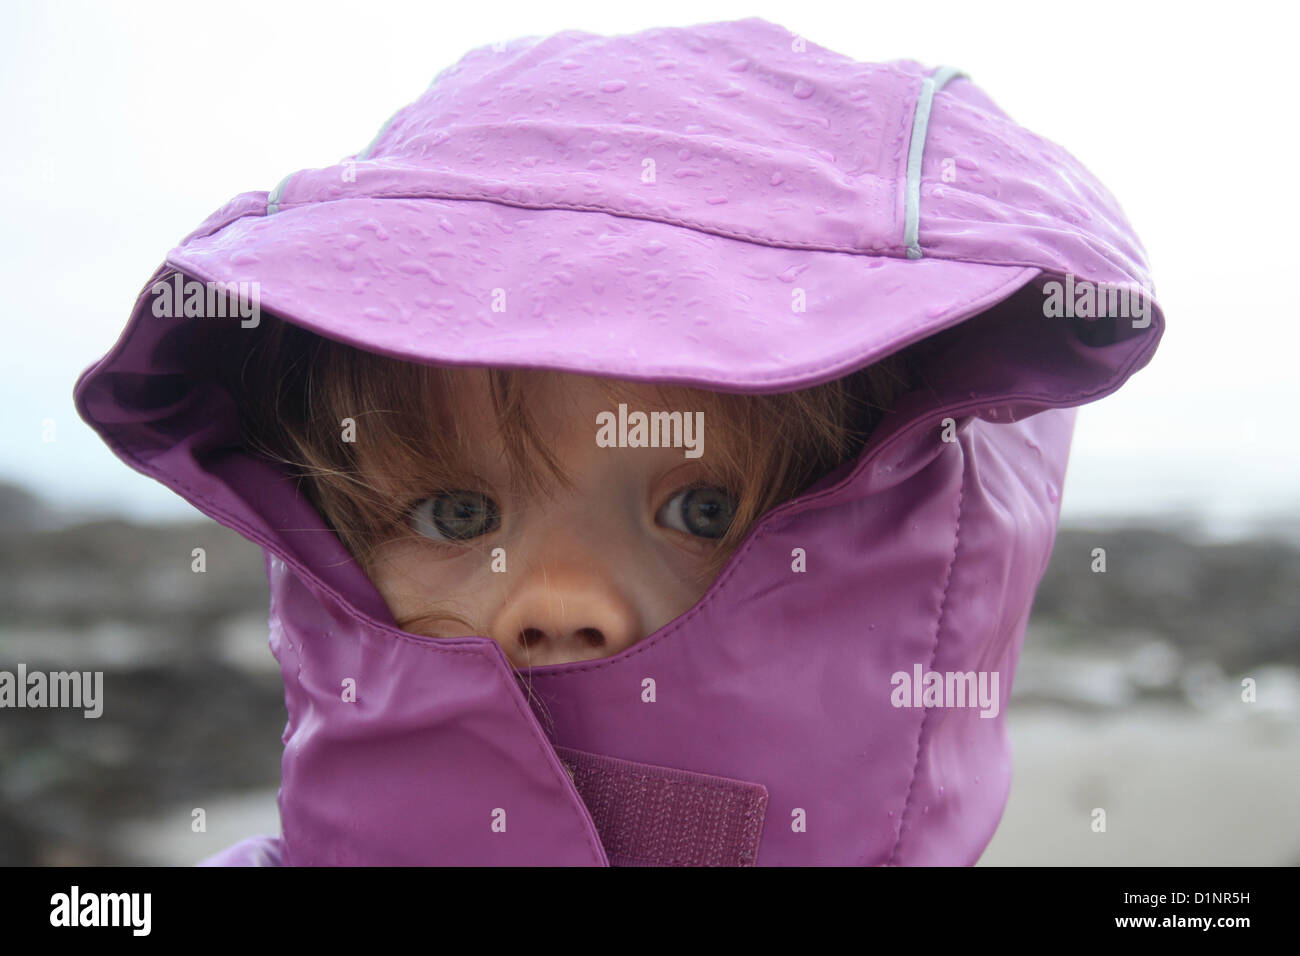 A girl wearing wet weather coat in the rain Stock Photo  52724941 ... ec20776c613